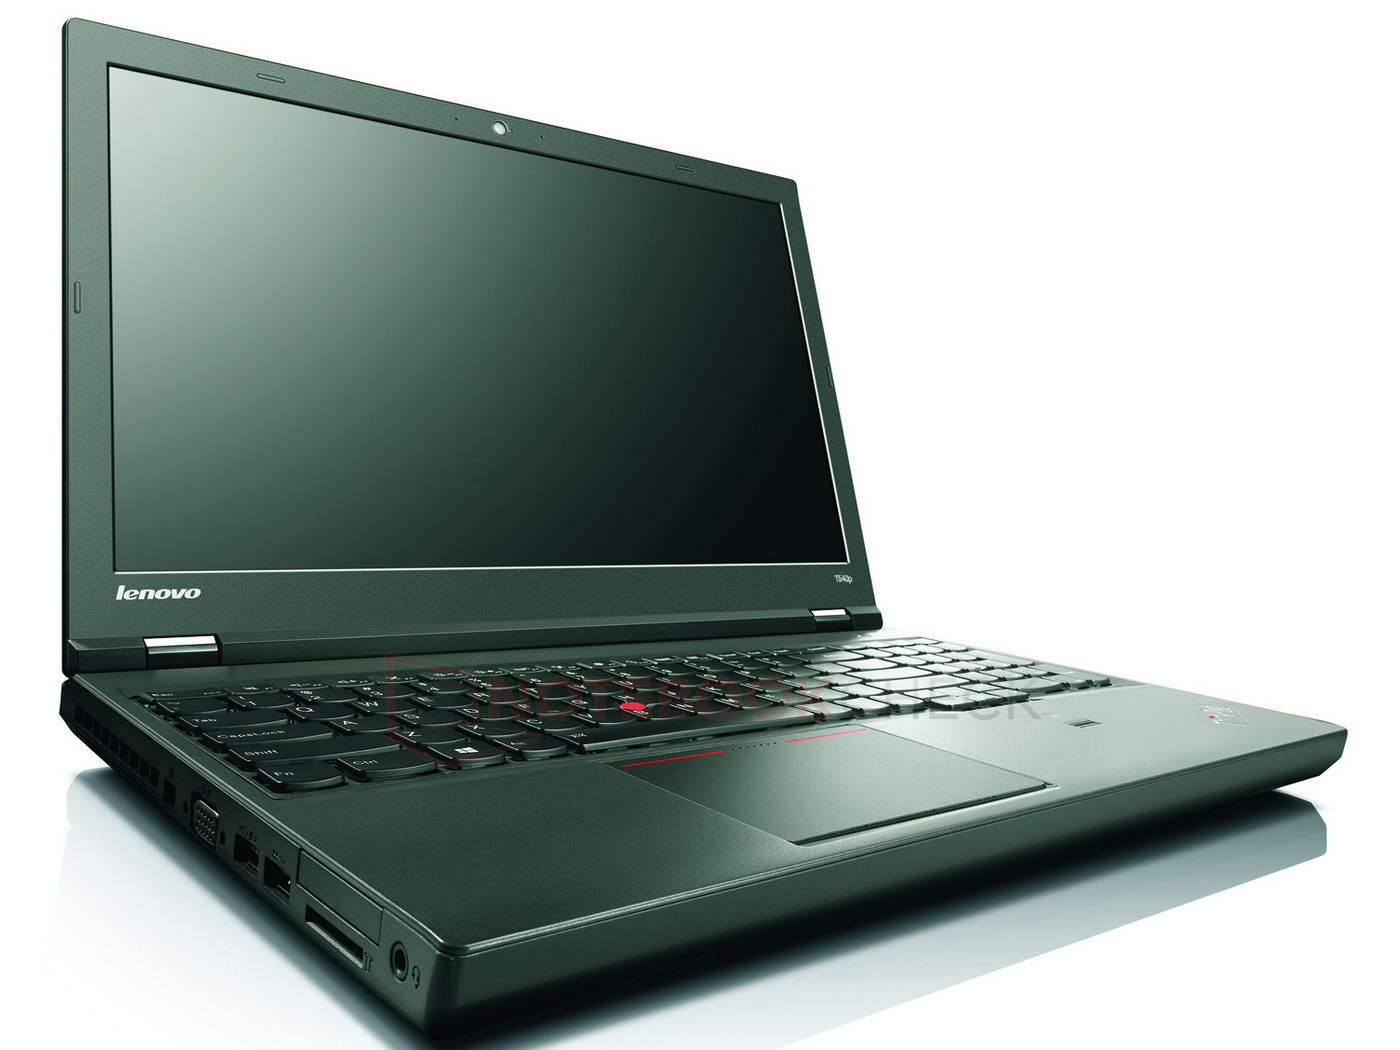 Solid State Battery >> Lenovo has new ThinkPad notebooks for business clients - NotebookCheck.net News